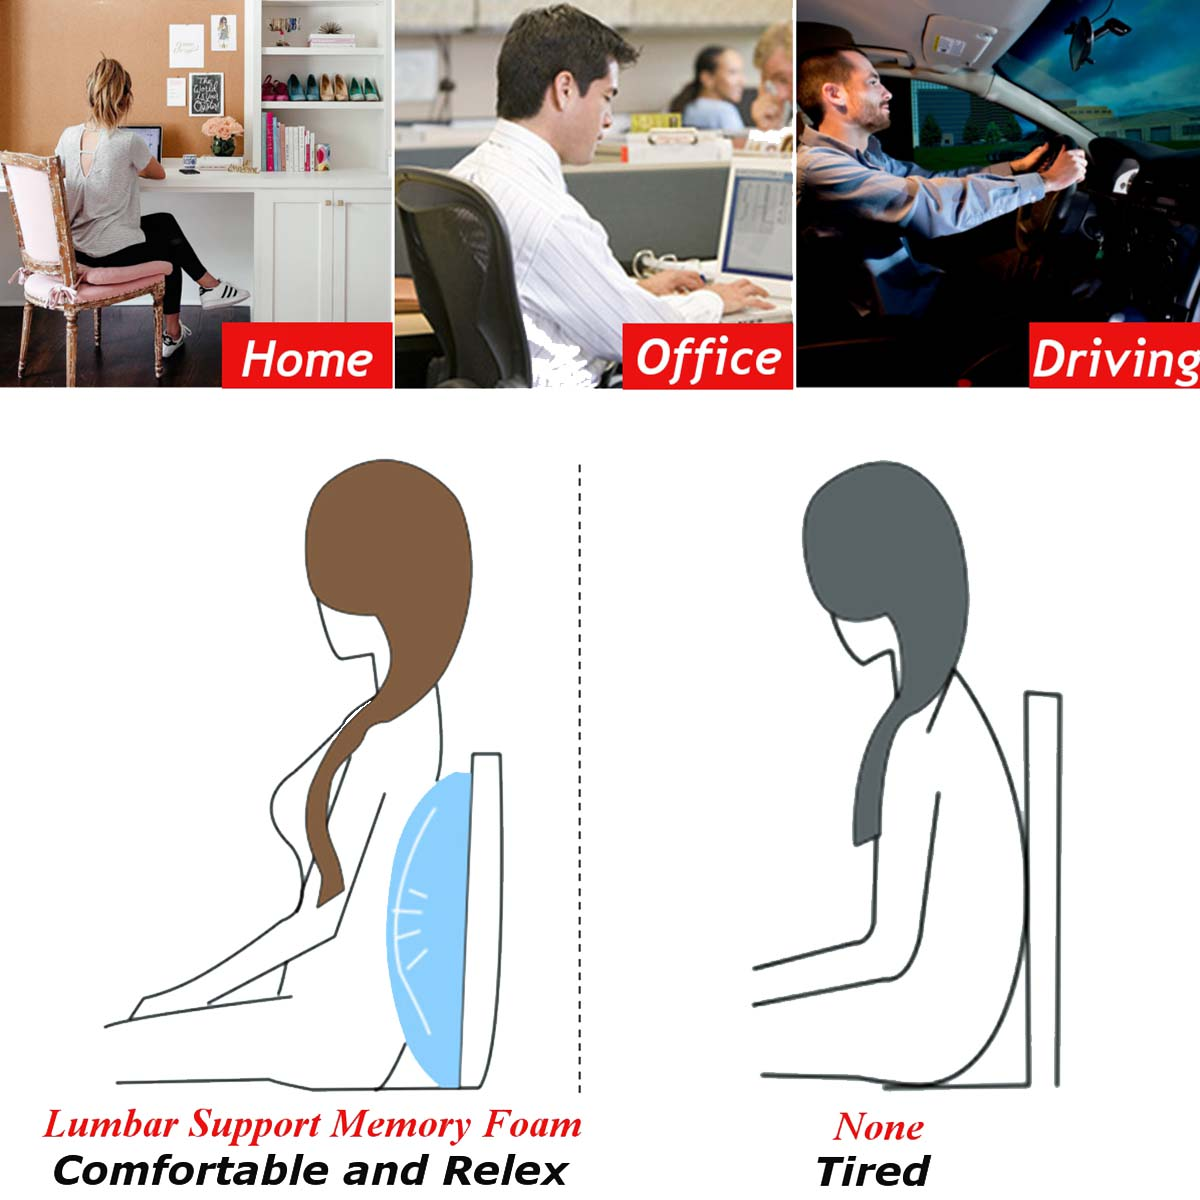 6 Color Lumbar Pillows Made Of Soft Foam For Car Seat To Support And Relieve Back Pain 1